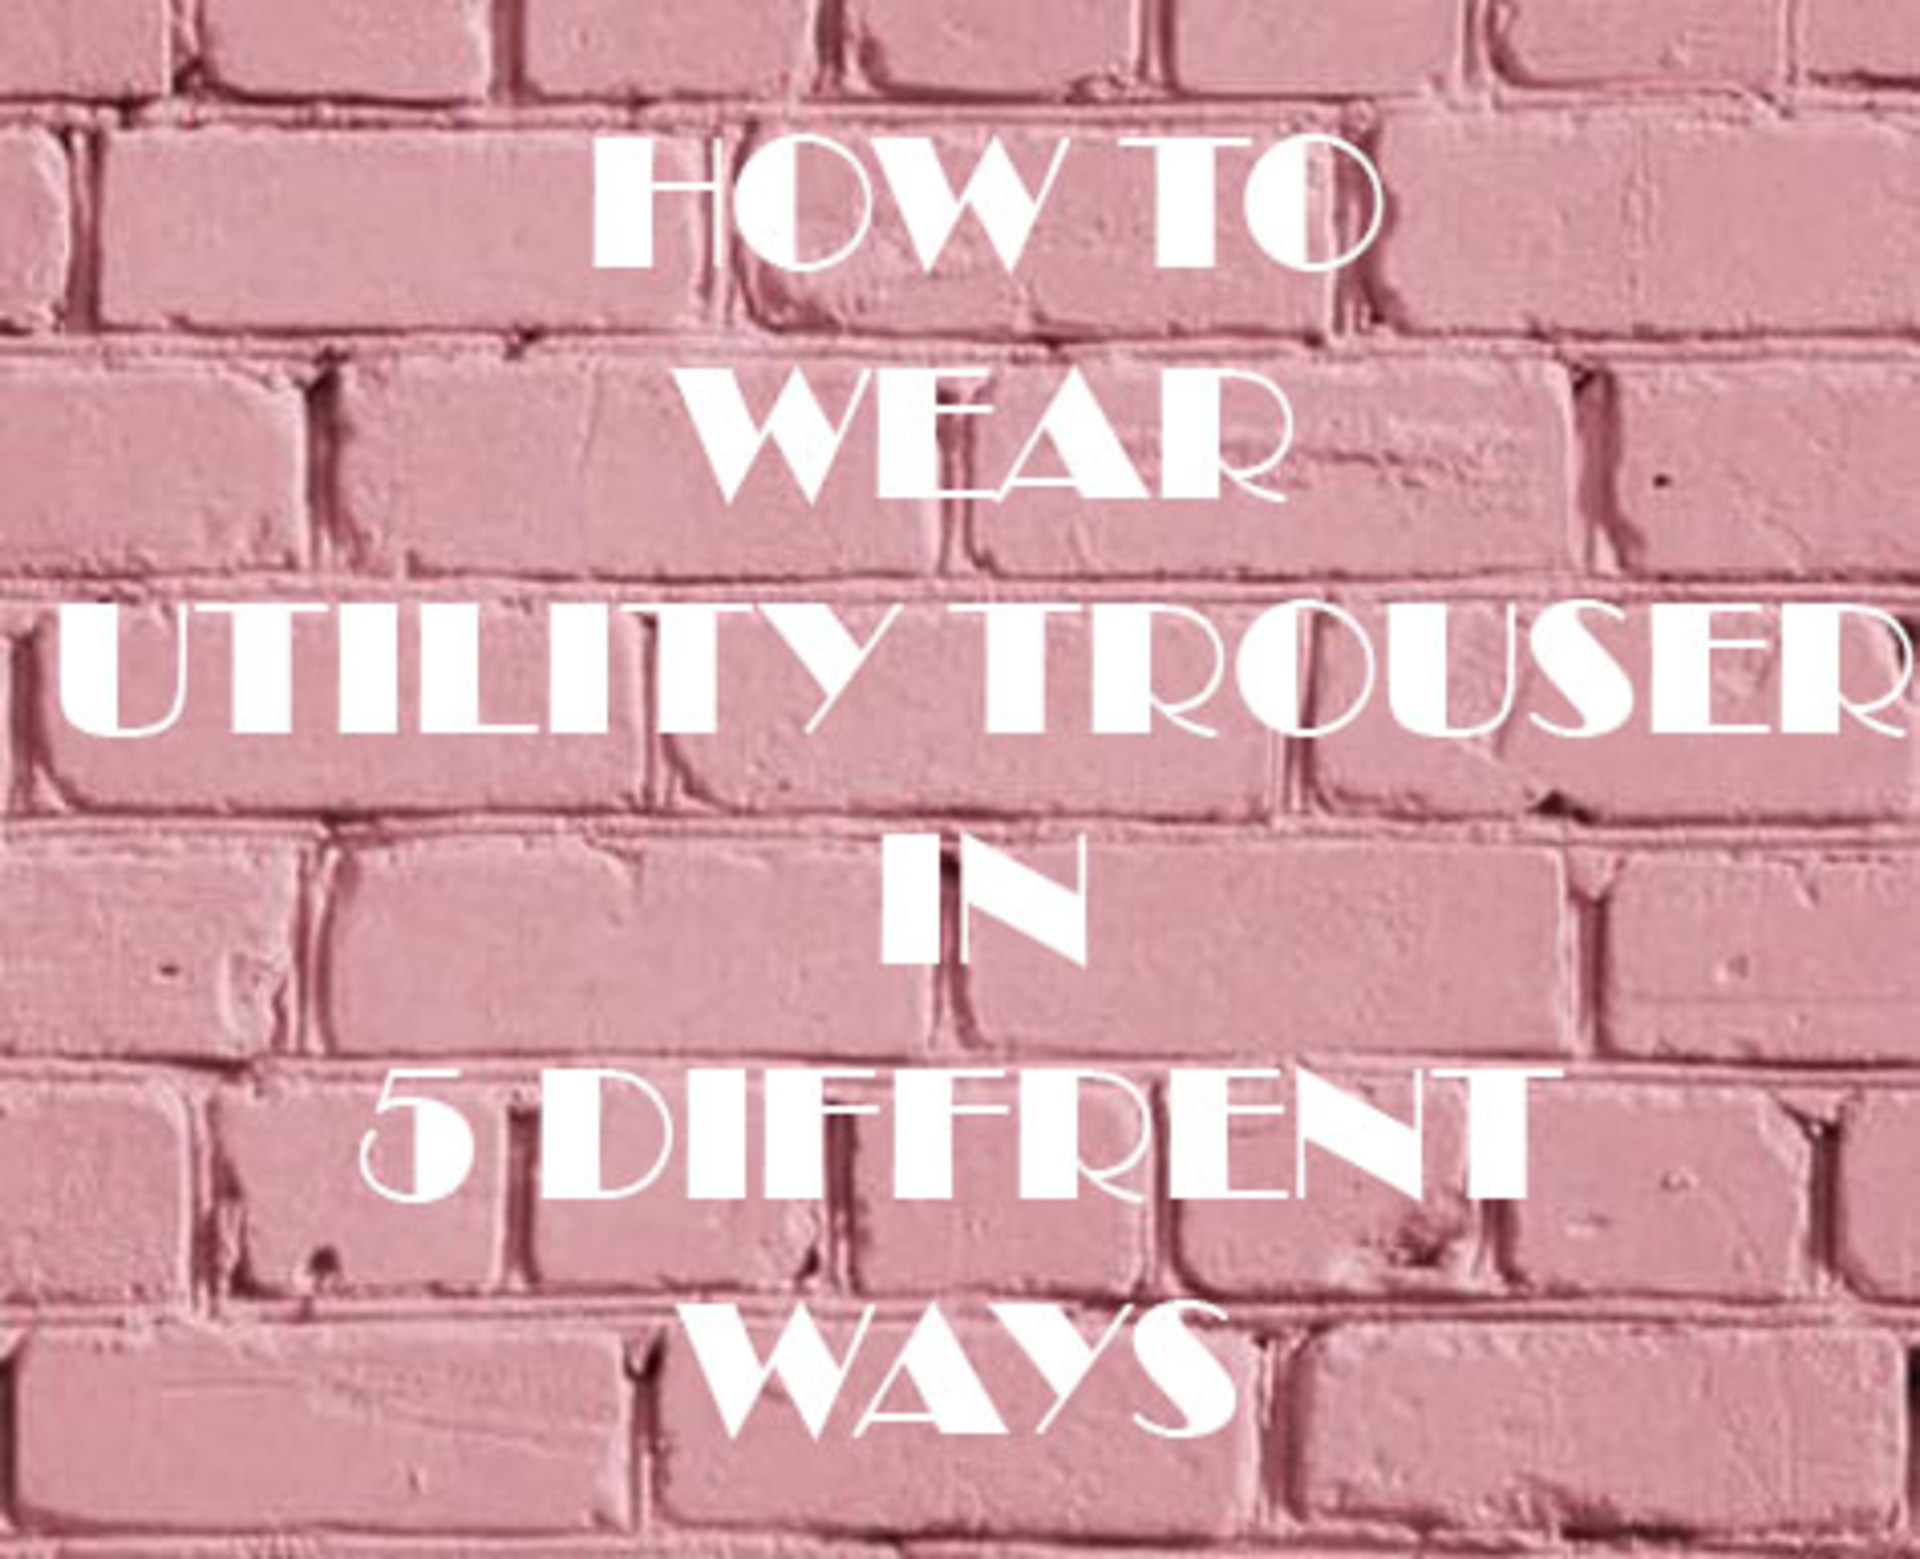 HOW TO STYLE UTILITY TROUSERS  image